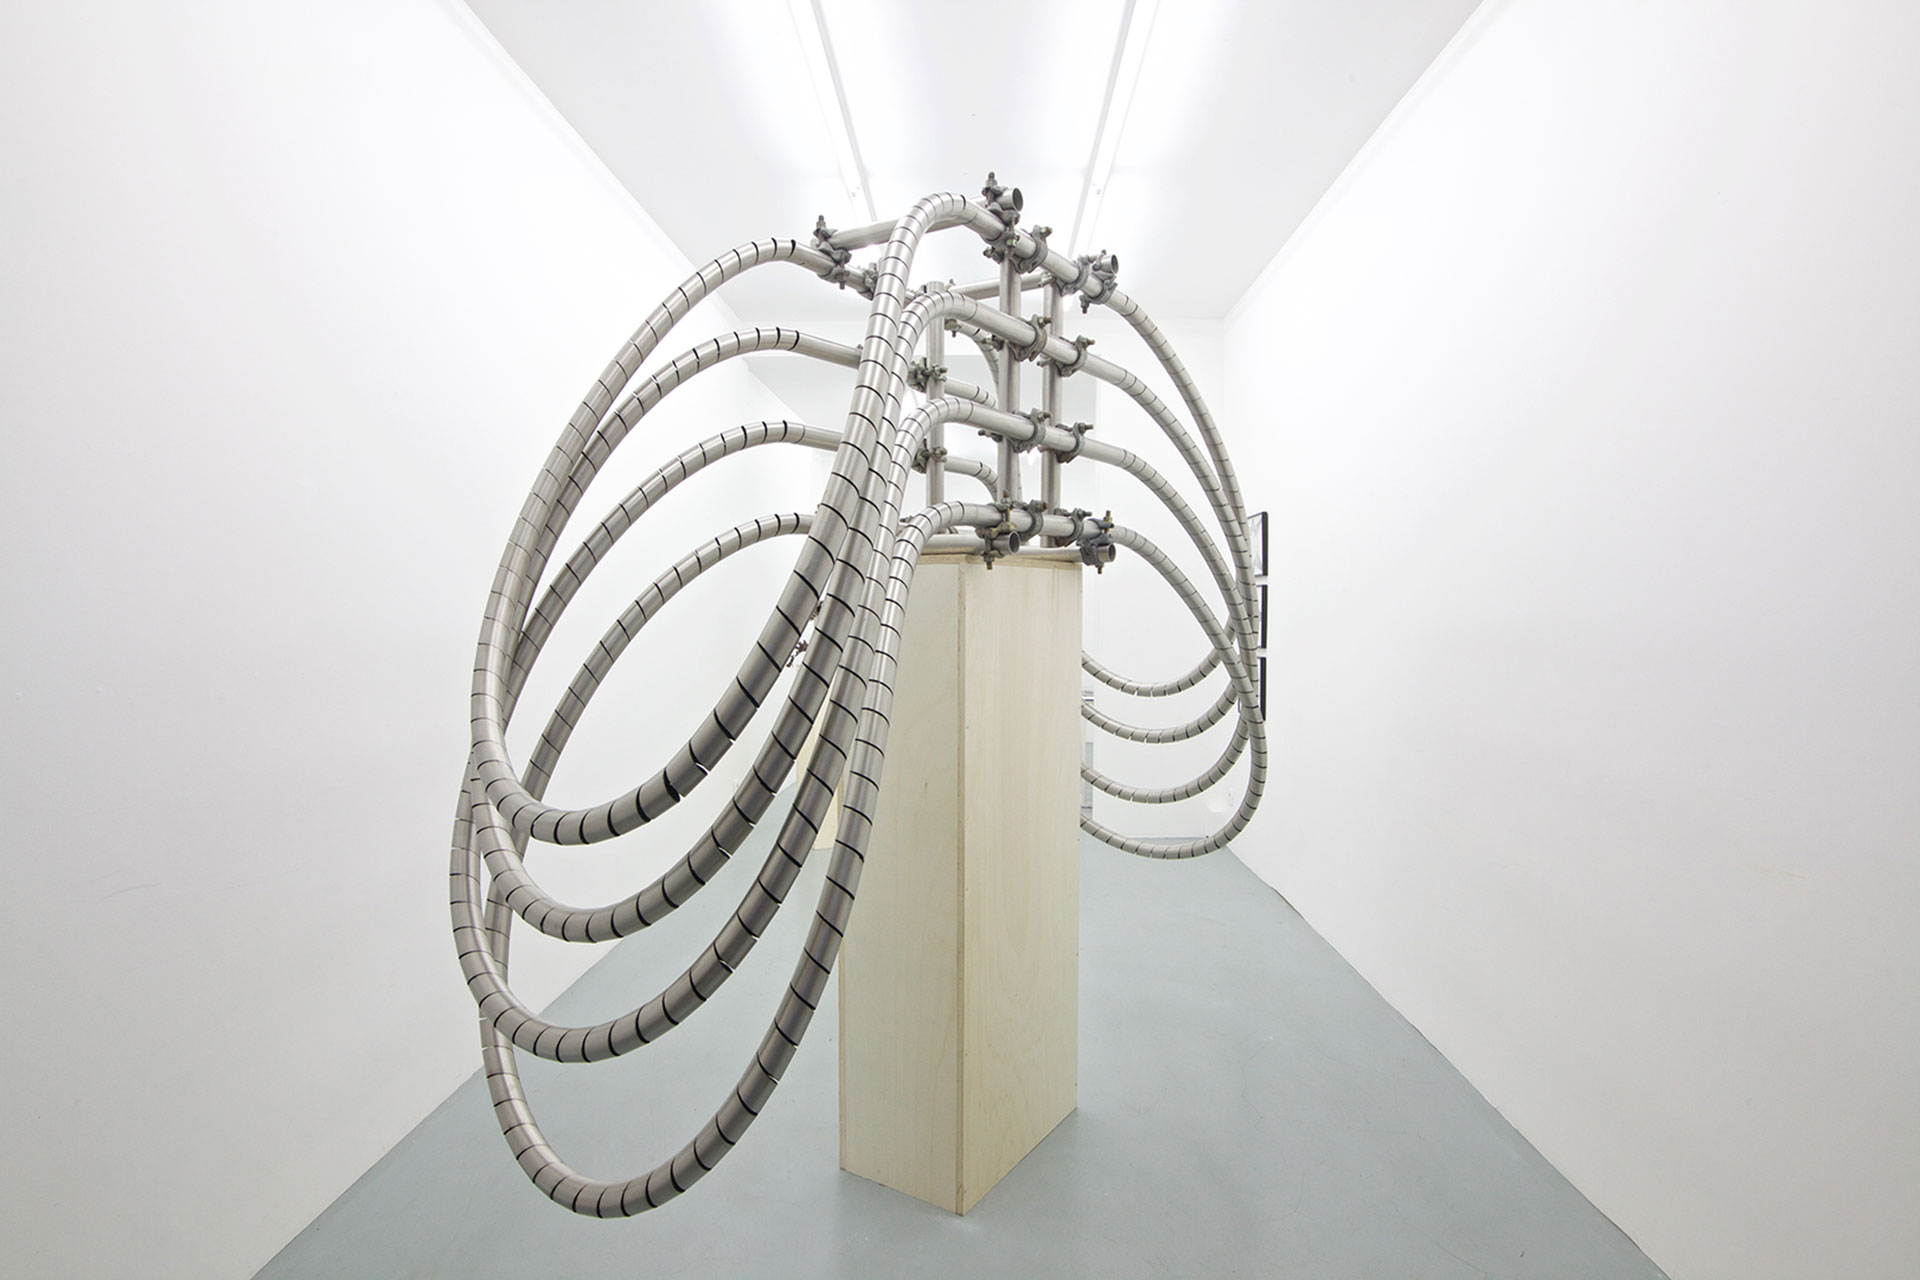 Untitled | 2018 | Stainless steel pipes and scaffolding clamps | 180 x 90 x 280 cm